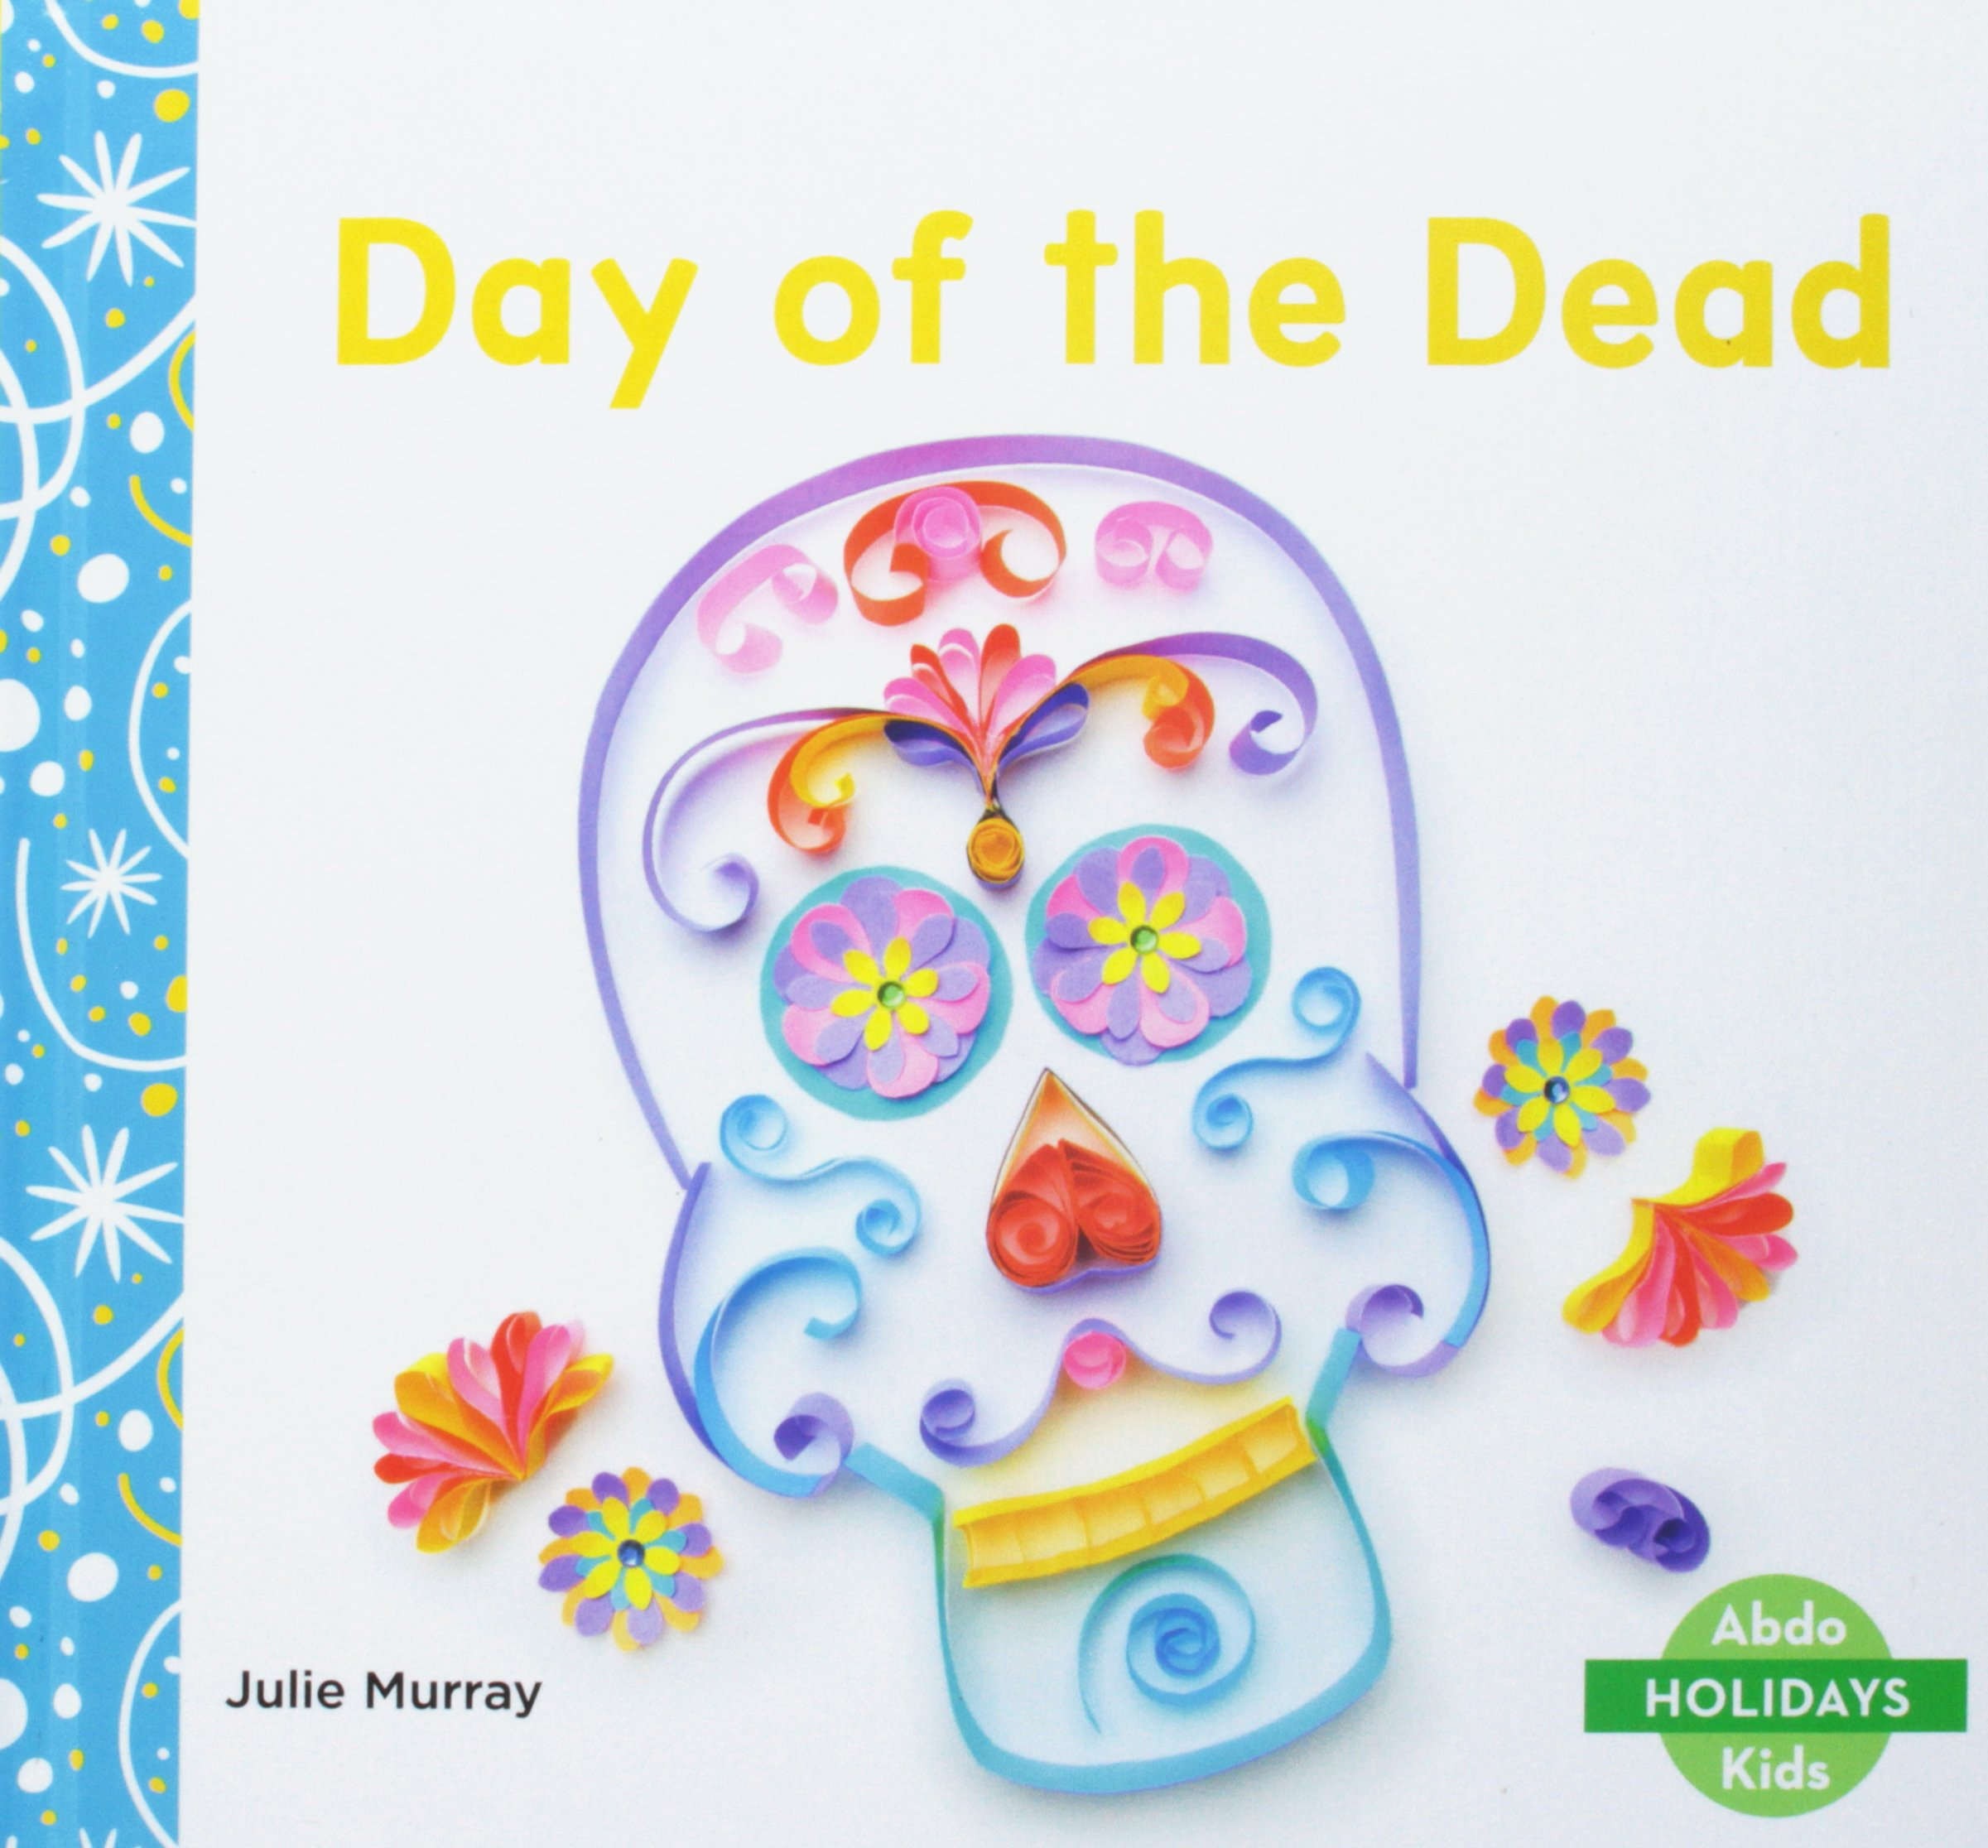 Day of the Dead (Holidays)